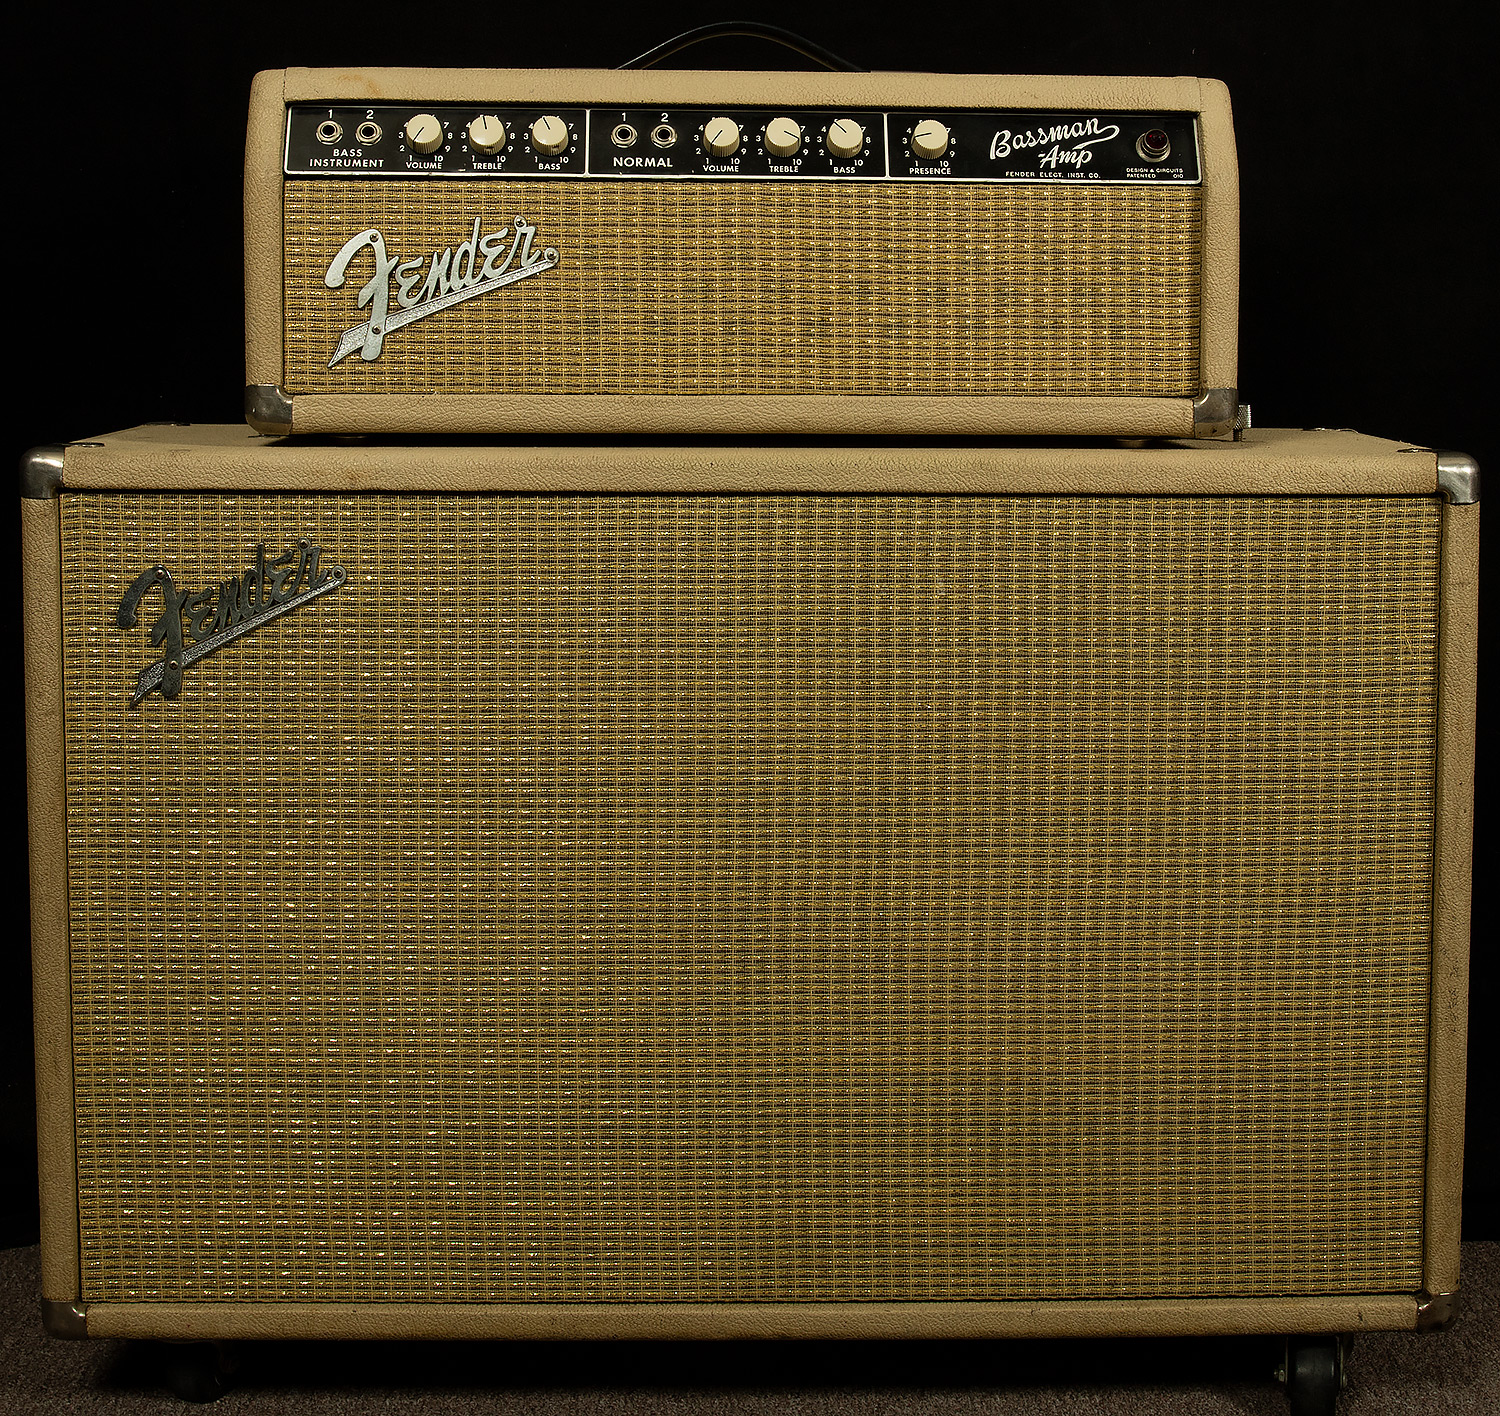 cabinet bassman fender silverface pictures audiofanzine a image medias play guitar m